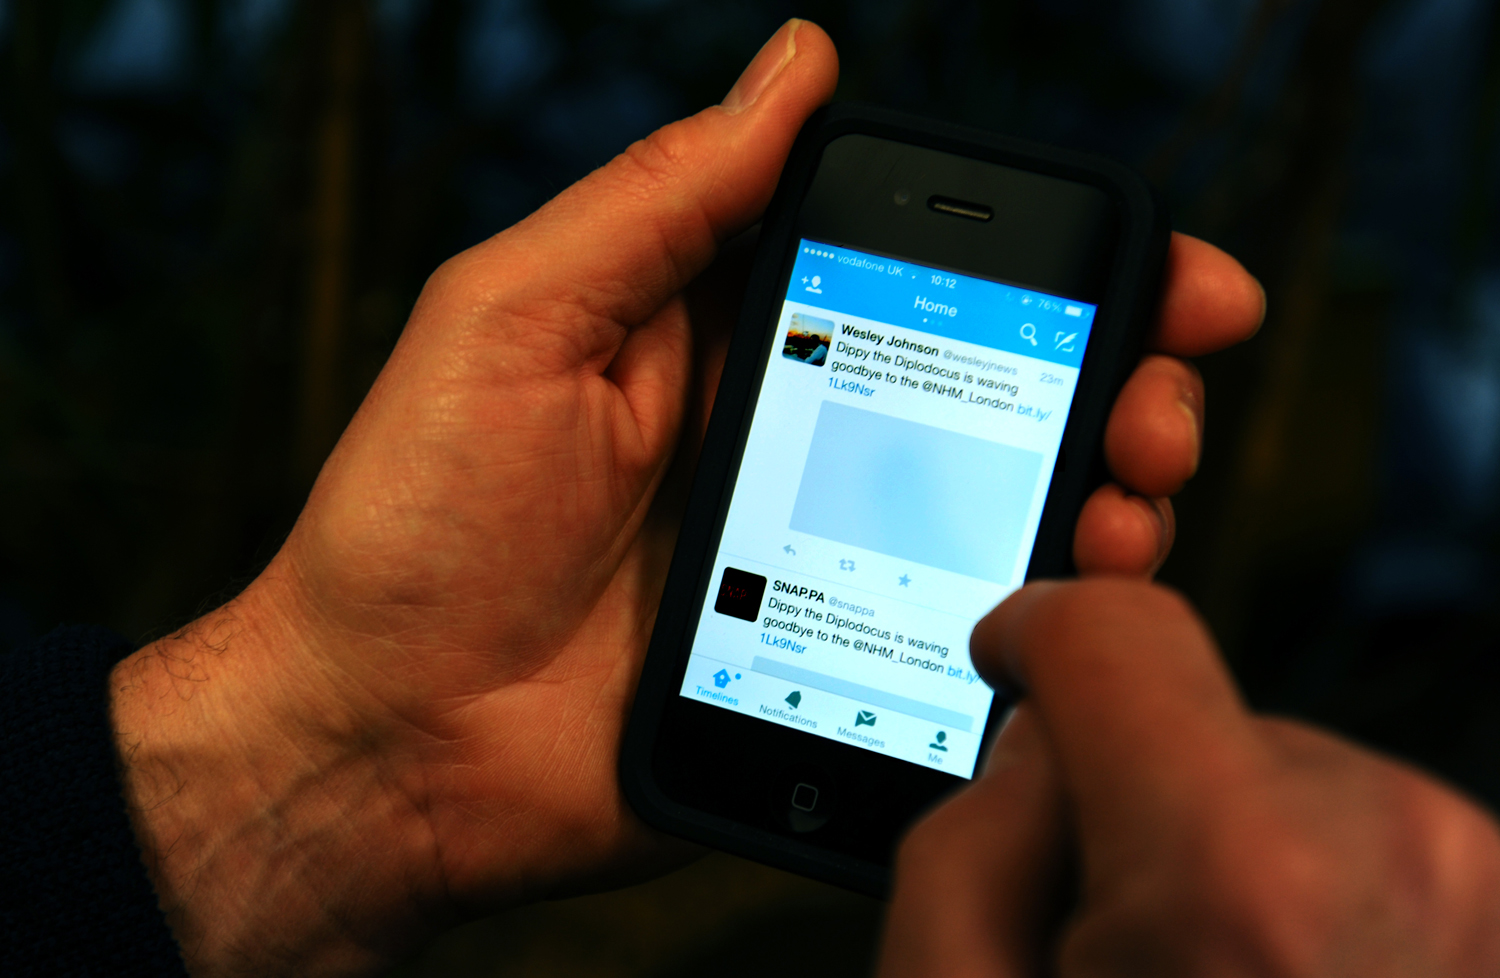 The Twitter App is shown on an Apple iPhone 4S.